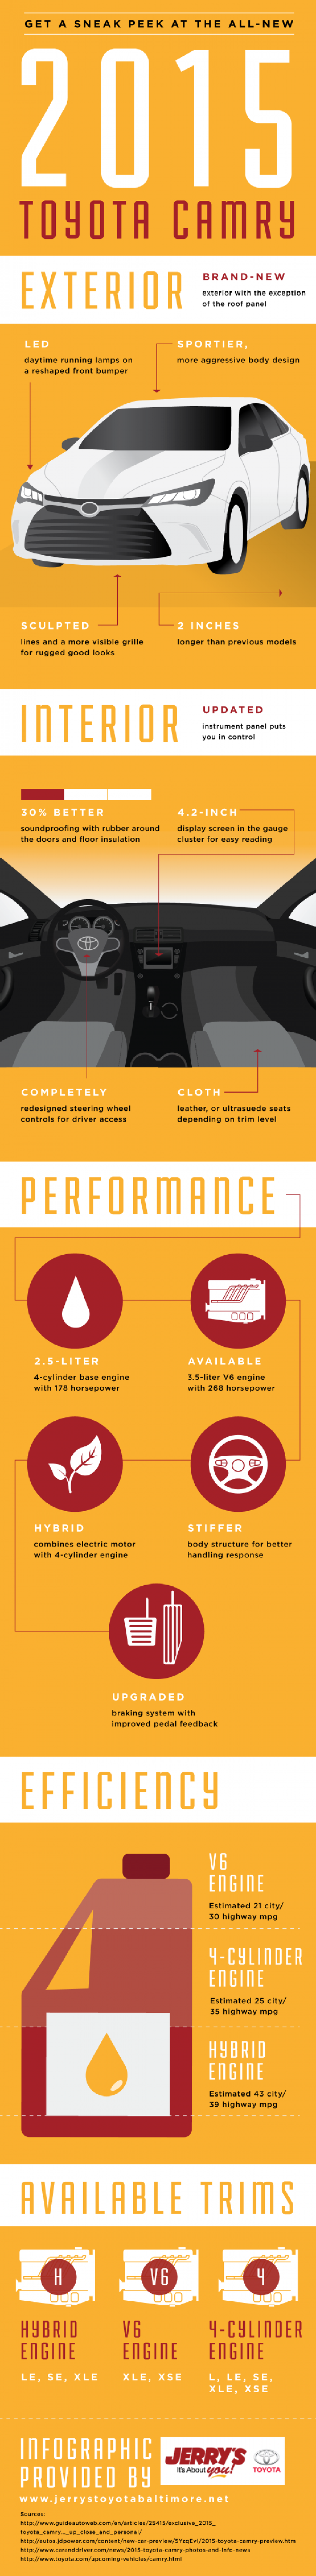 Get a Sneak Peek at the All-New 2015 Toyota Camry Infographic